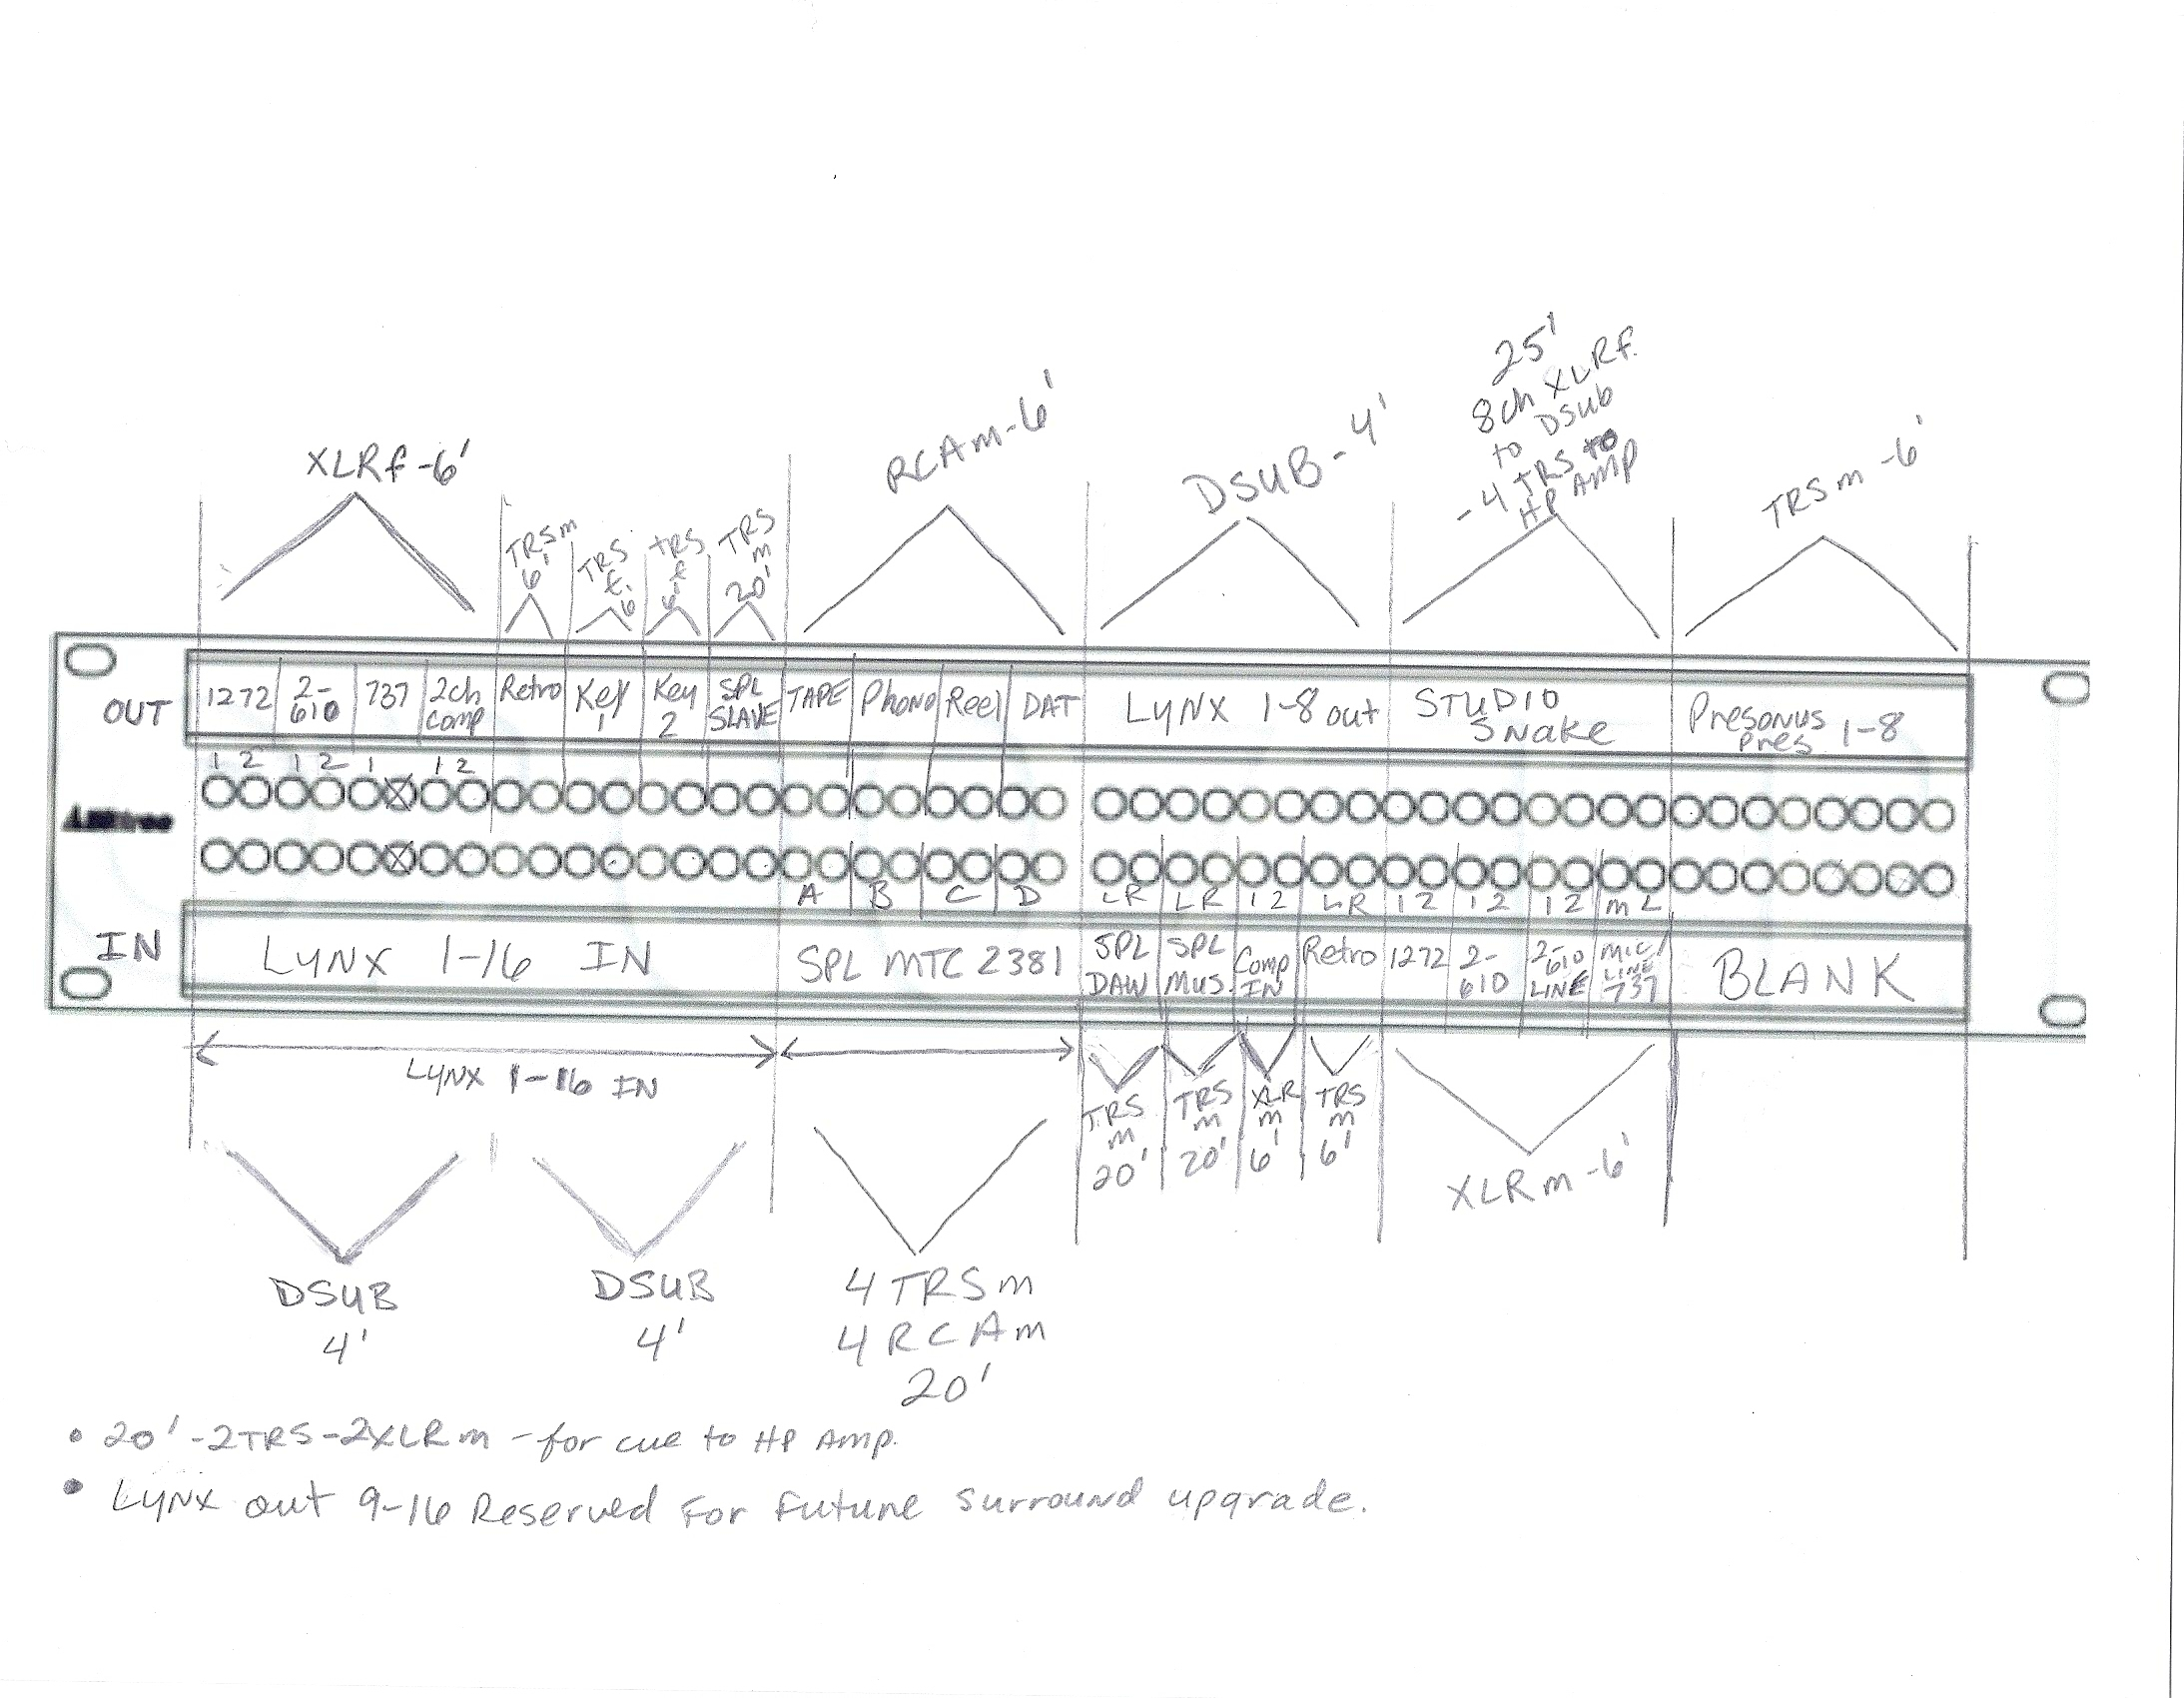 209258d1292537935 tt patchbay setup diagram opinions jpg pdf attached patchbaysetup studio patch bay diagram patchbay wiring diagram at gsmx.co